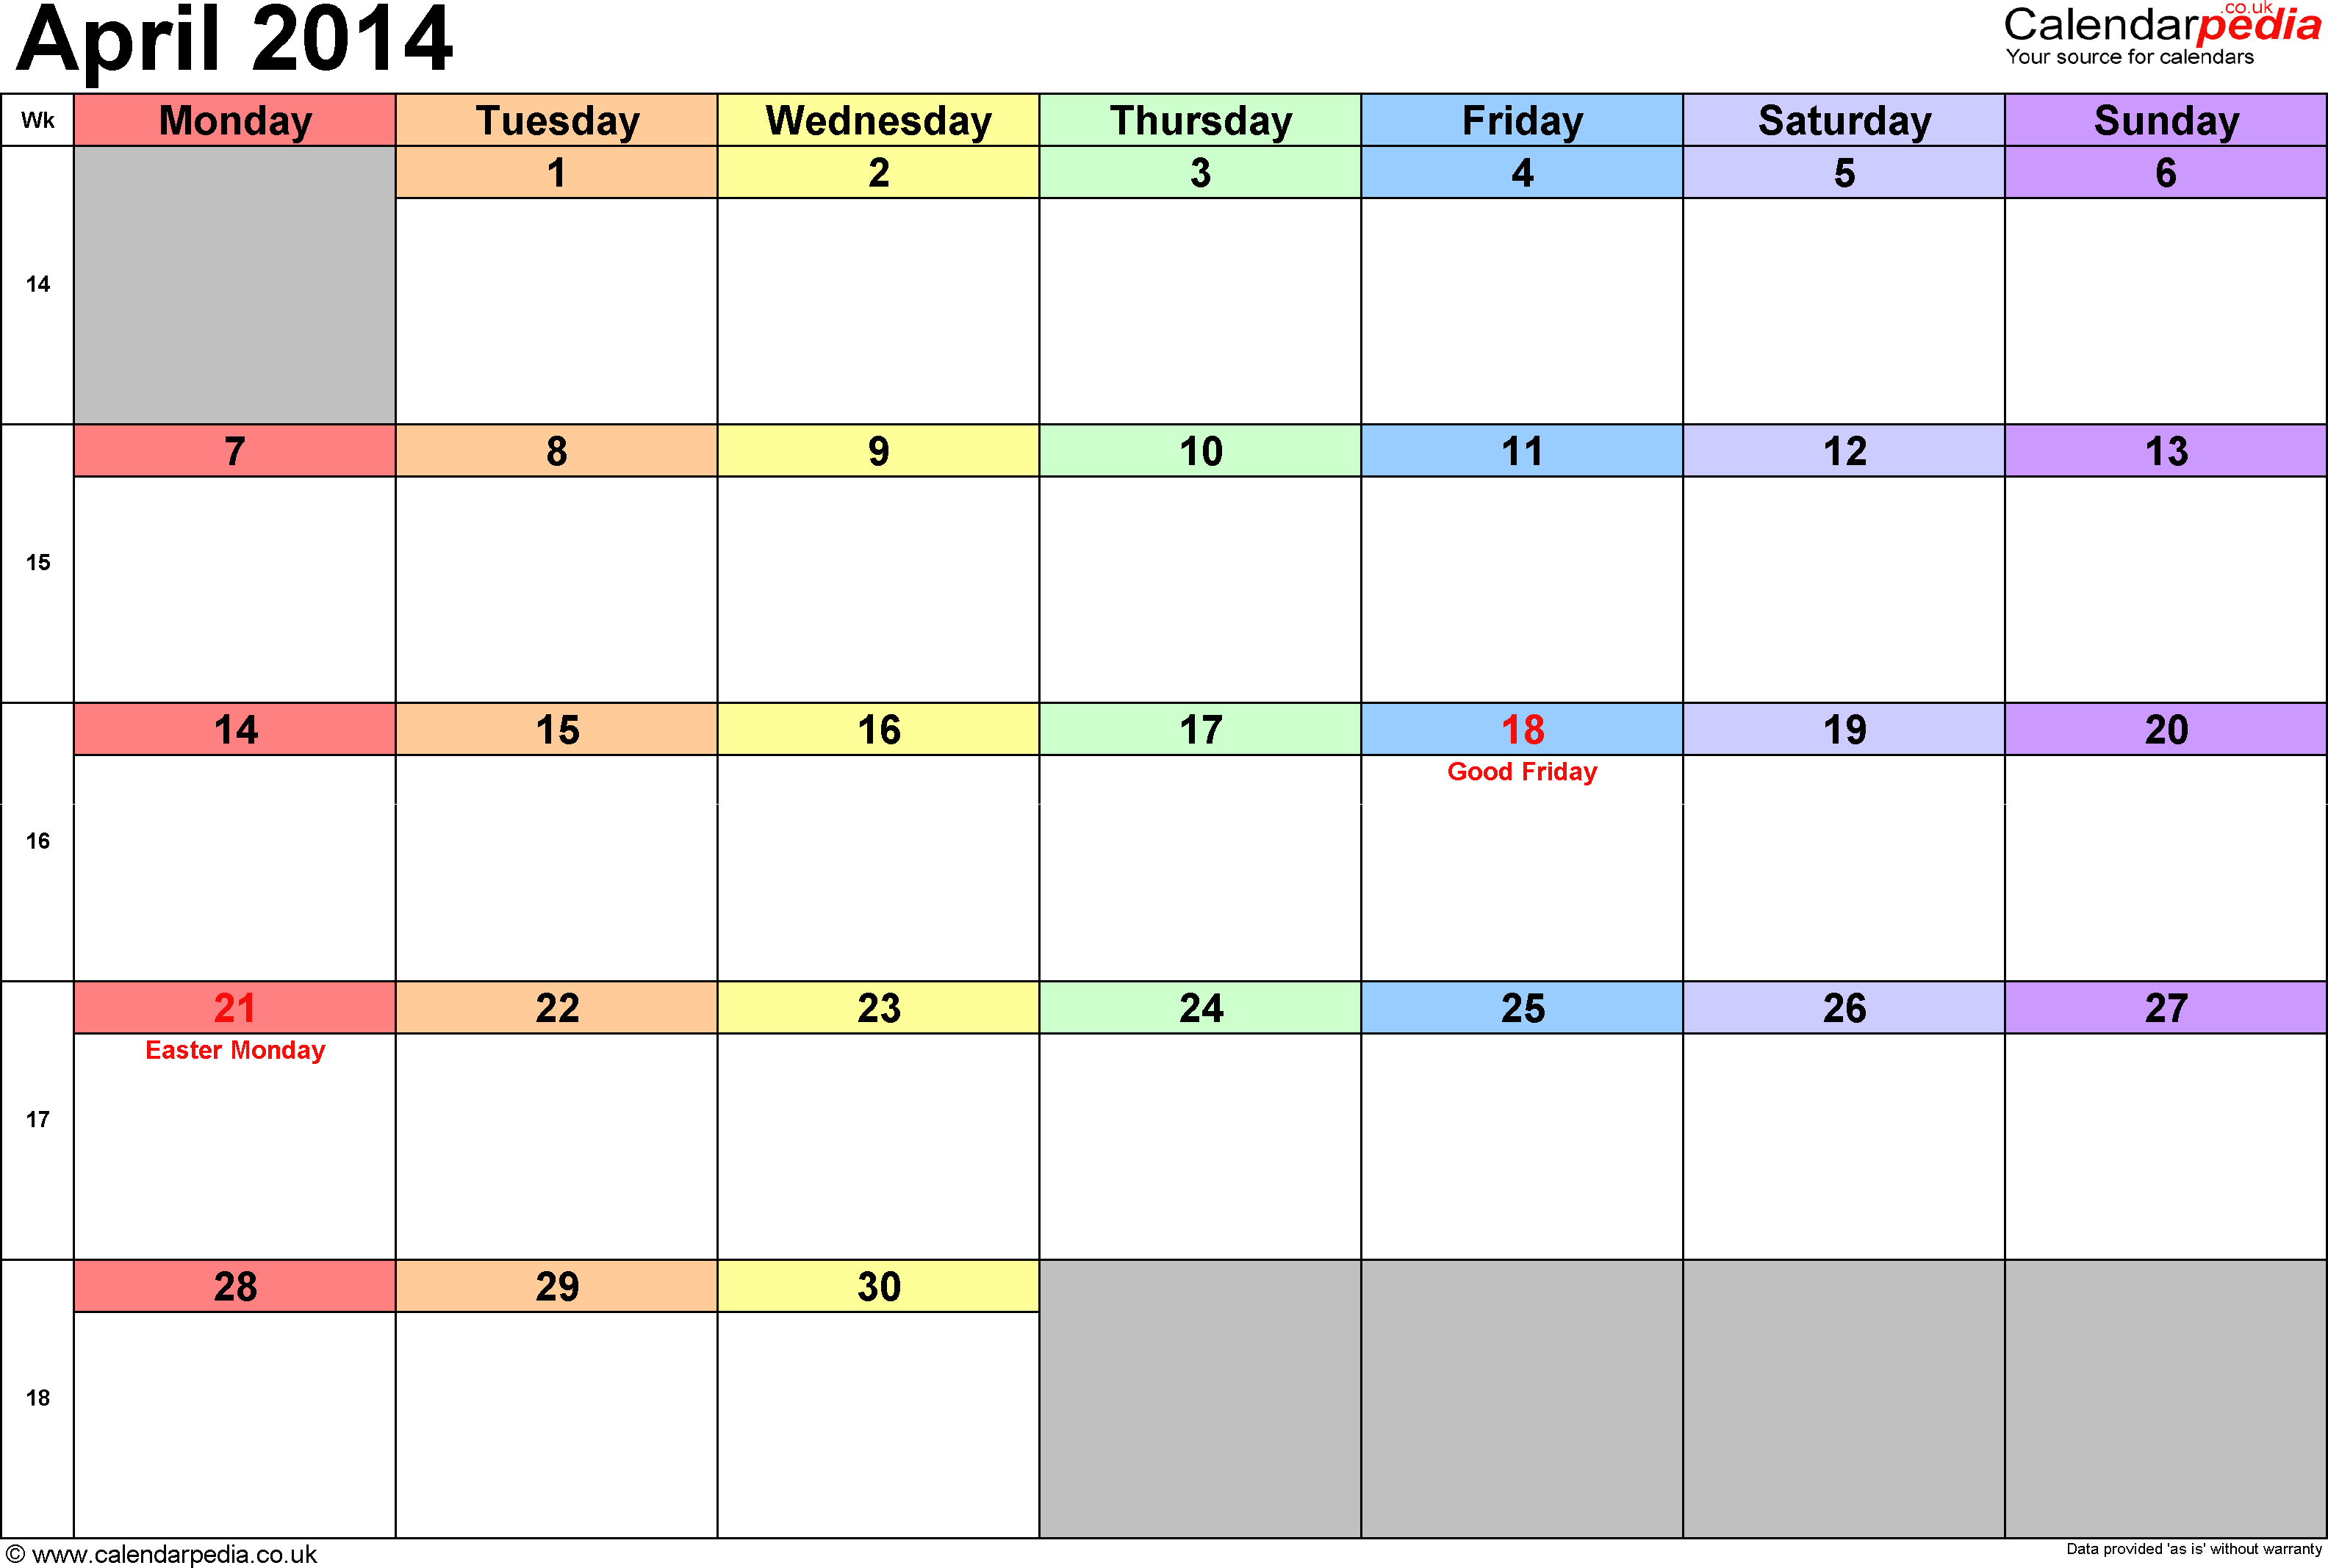 Calendar April 2014, landscape orientation, 1 page, with UK bank holidays and week numbers